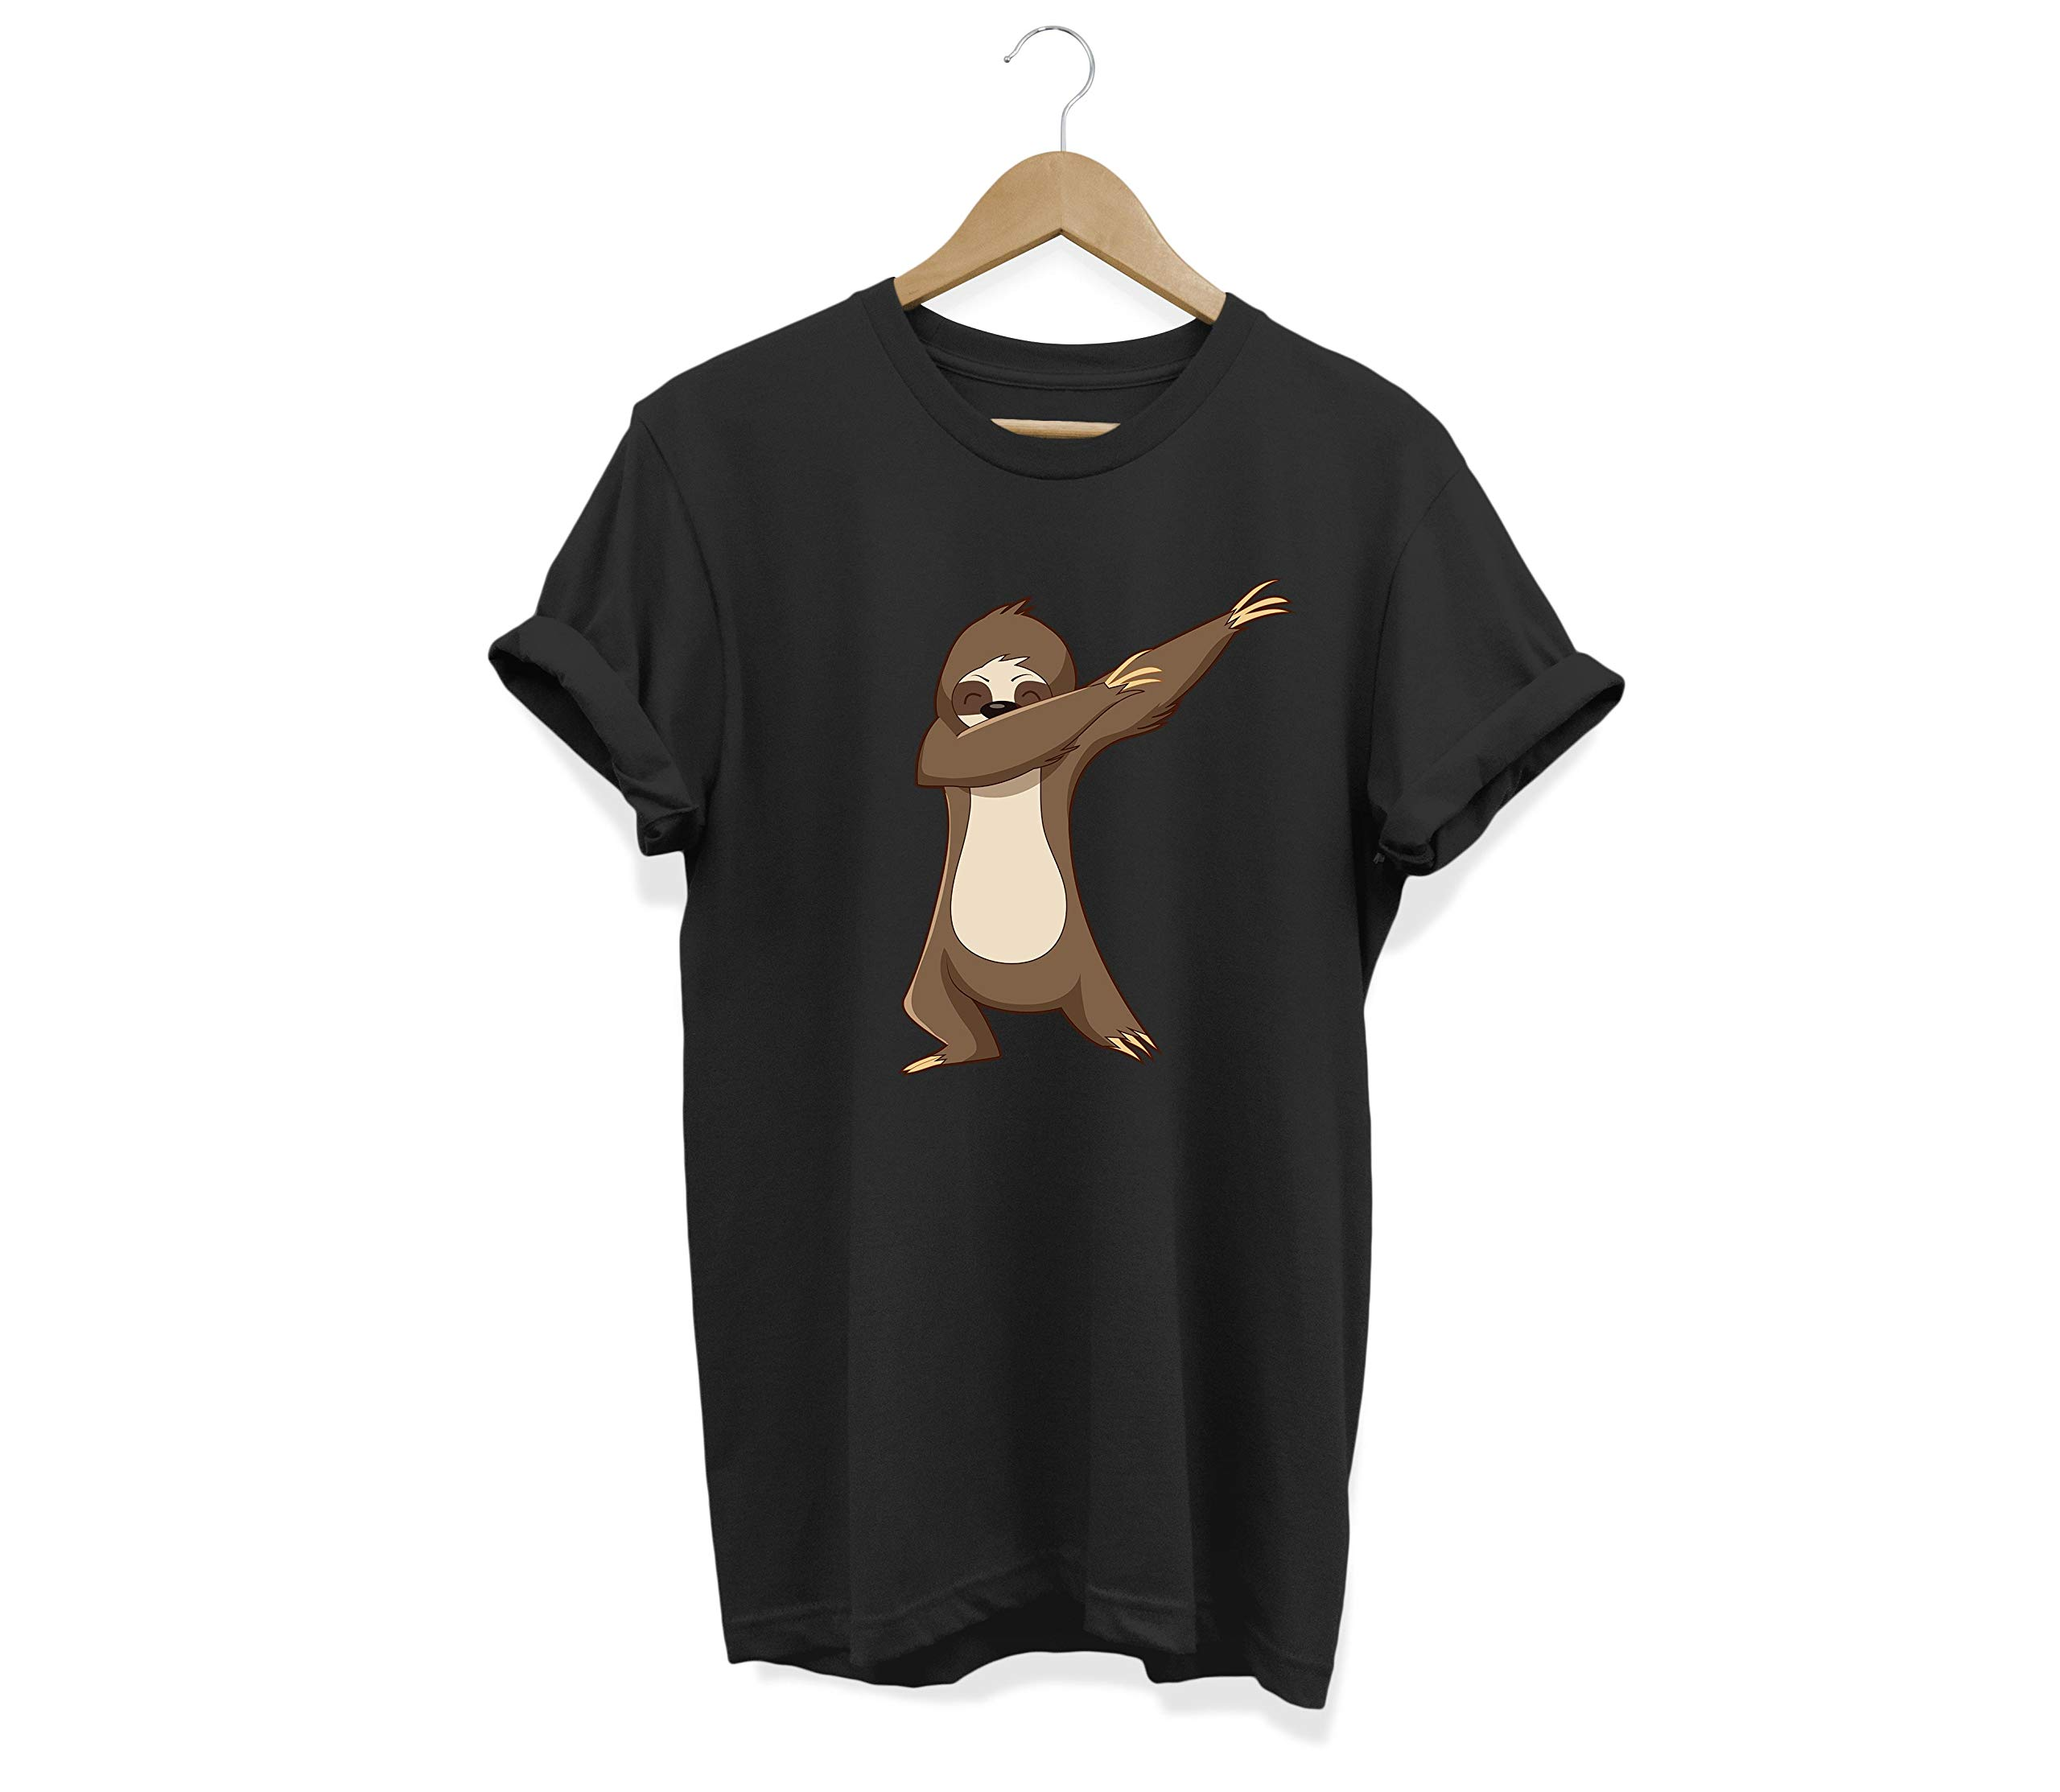 Weezag Sloth Tee Shirt For Men Women Boys Girls, Dabbing Gifts For Sloth Lovers -